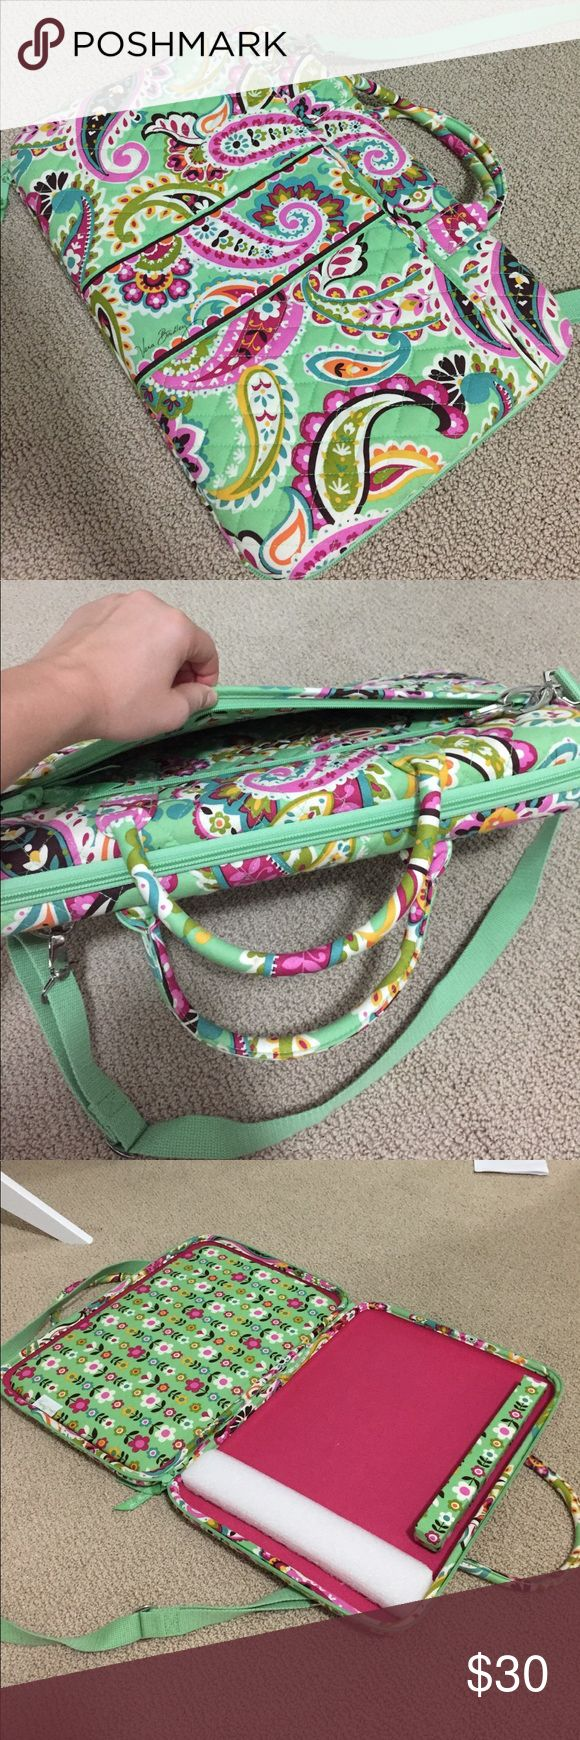 New unused Vera Bradley laptop bag. Tutti-frutti Tutti-frutti Vera Bradley laptop bag. Unused and new without tags. Front pockets in both sides. Zipper. Small handles and long cross body strap. Vera Bradley Bags Laptop Bags